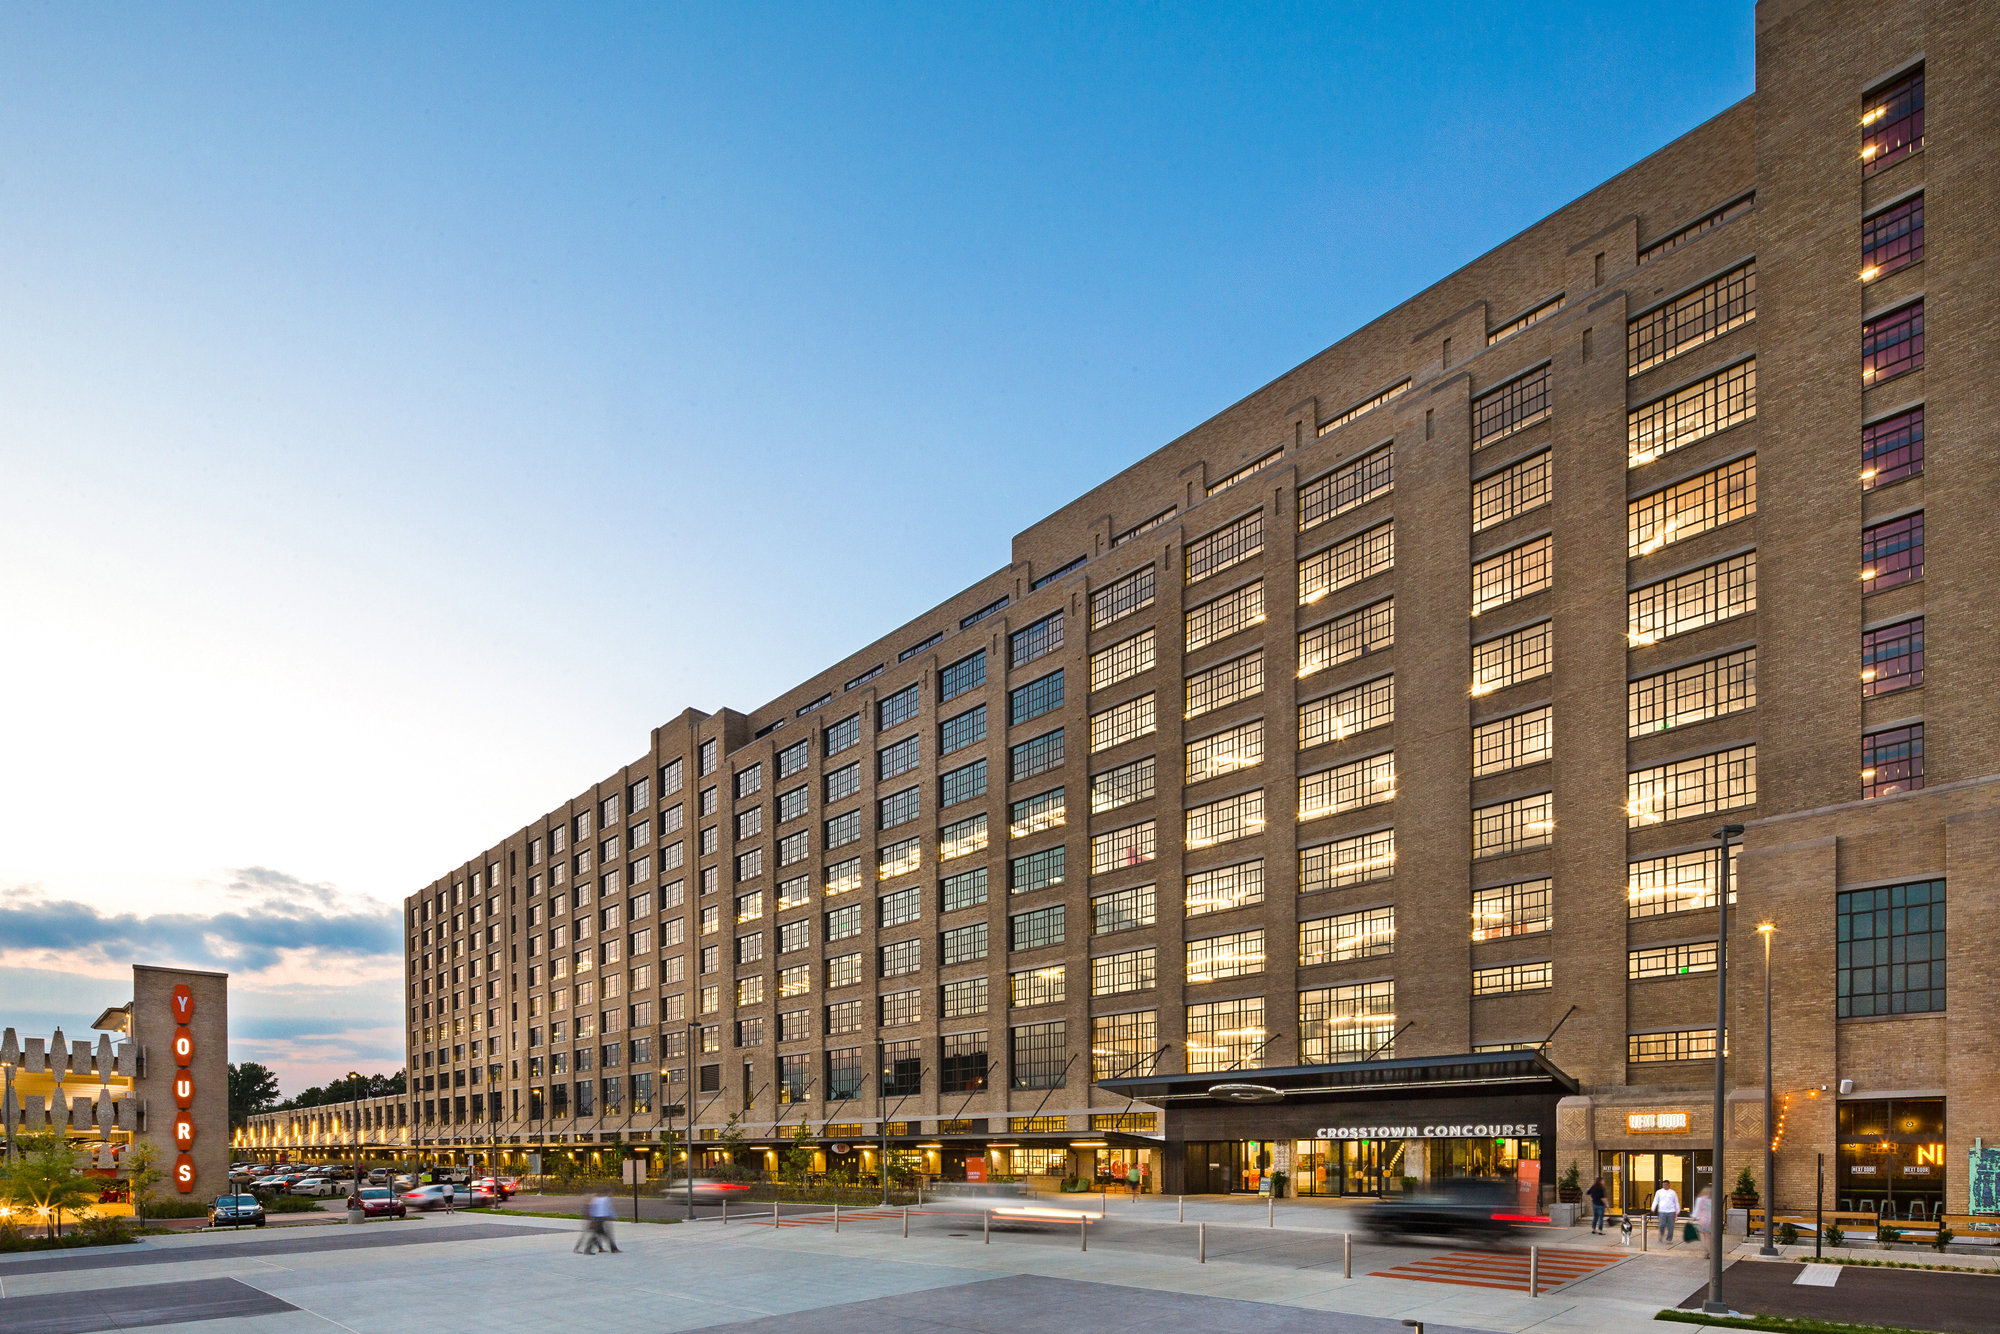 Crosstown Concourse By Looney Ricks Kiss Architect